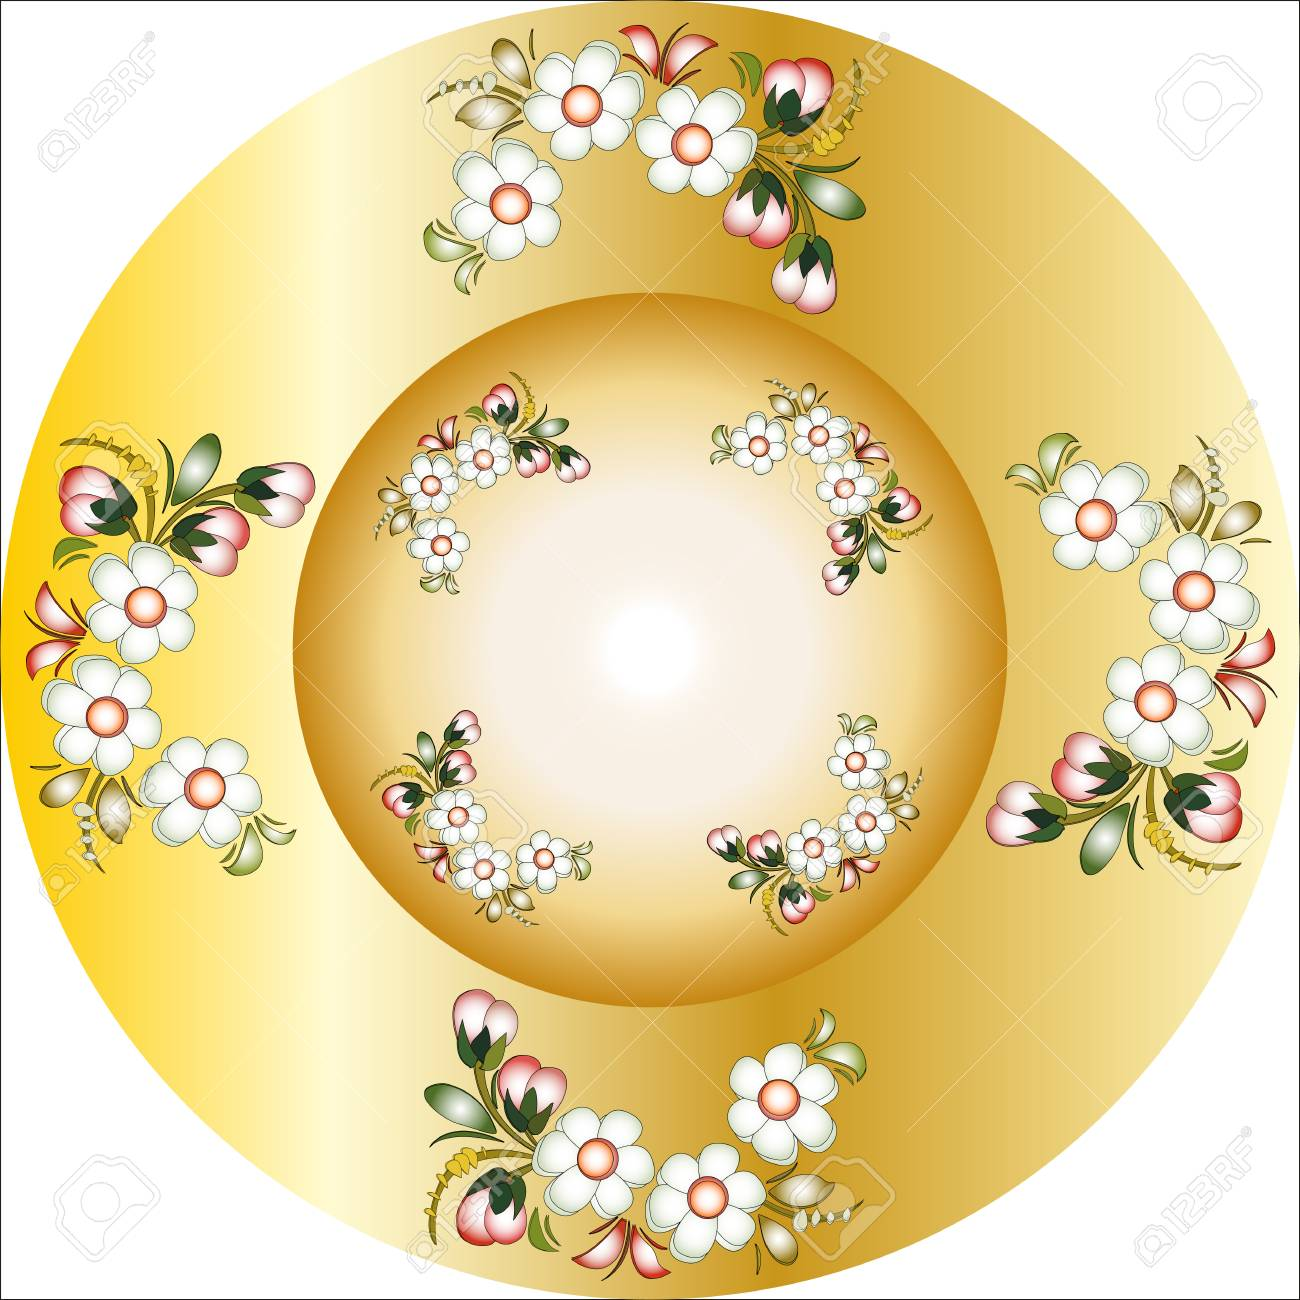 round ornament Golden plate with a painting Stock Vector - 22207713